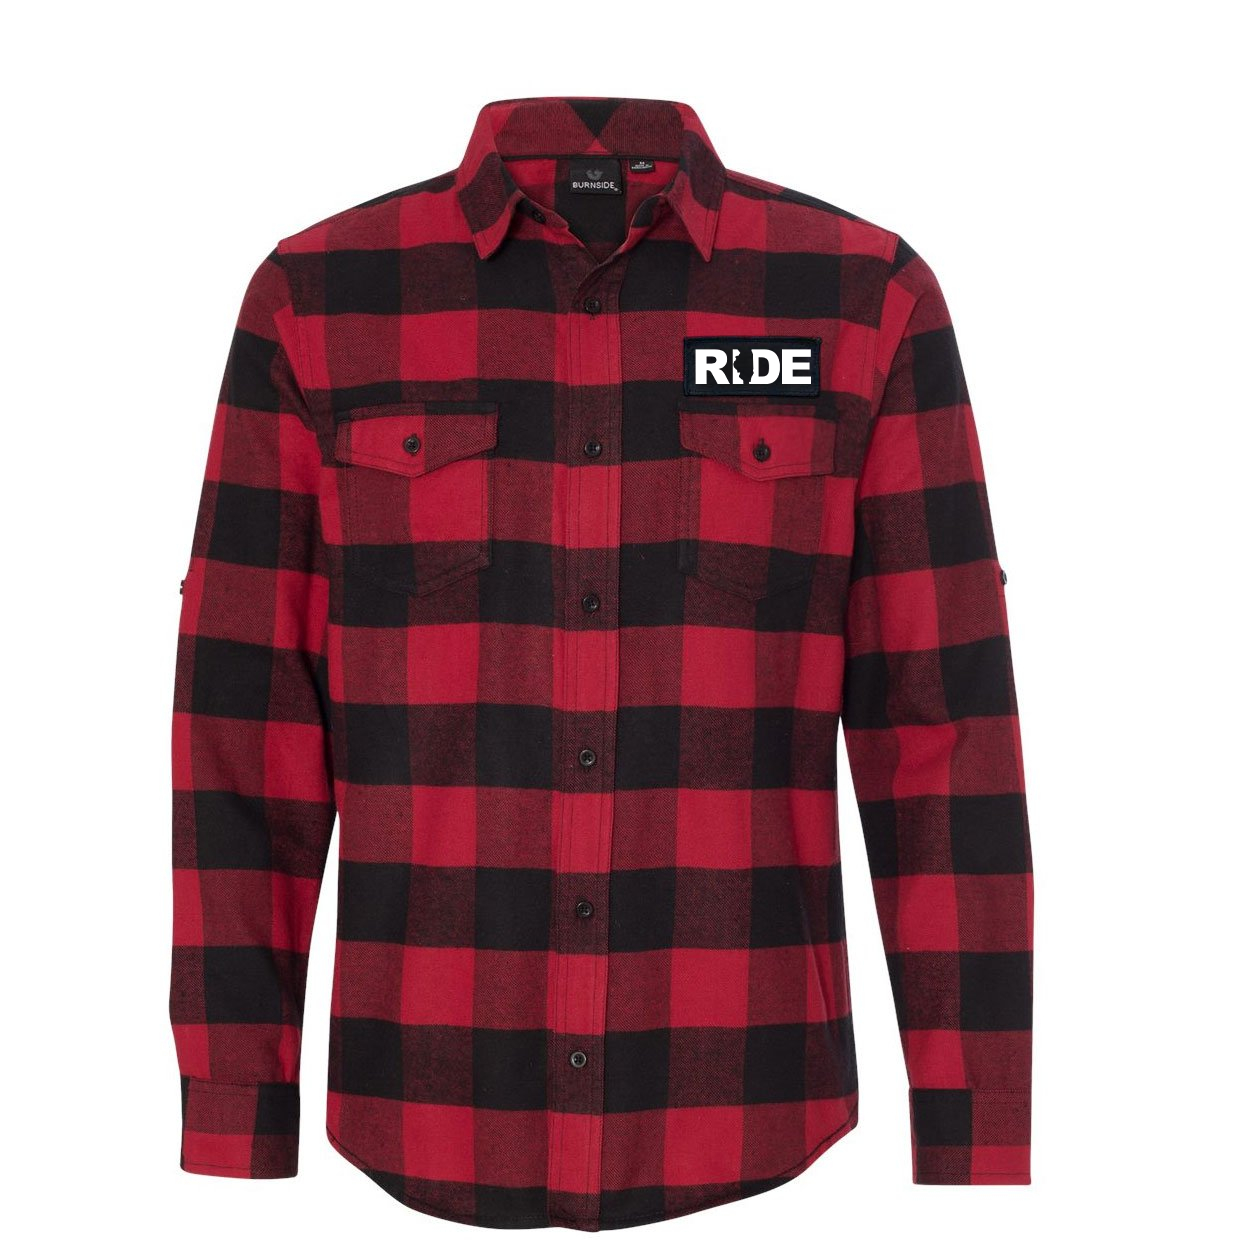 Ride Illinois Classic Unisex Long Sleeve Woven Patch Flannel Shirt Red/Black Buffalo (White Logo)